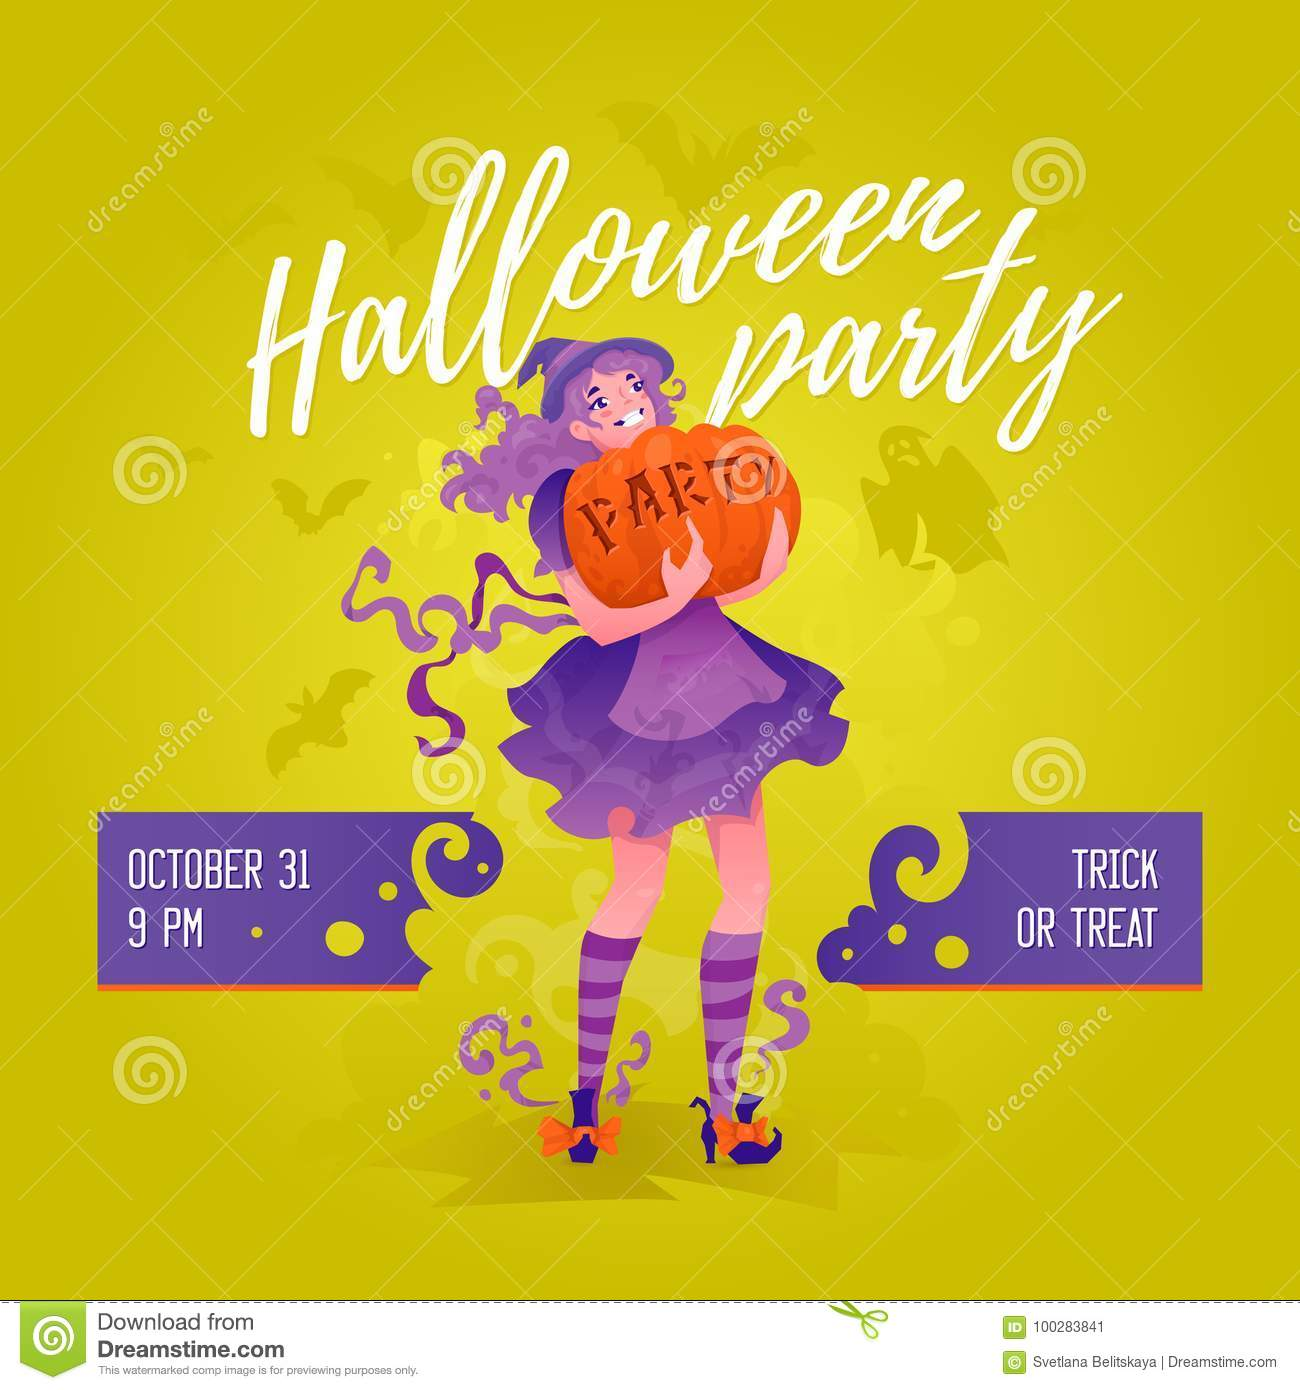 halloween party illustrative design concept stock illustration